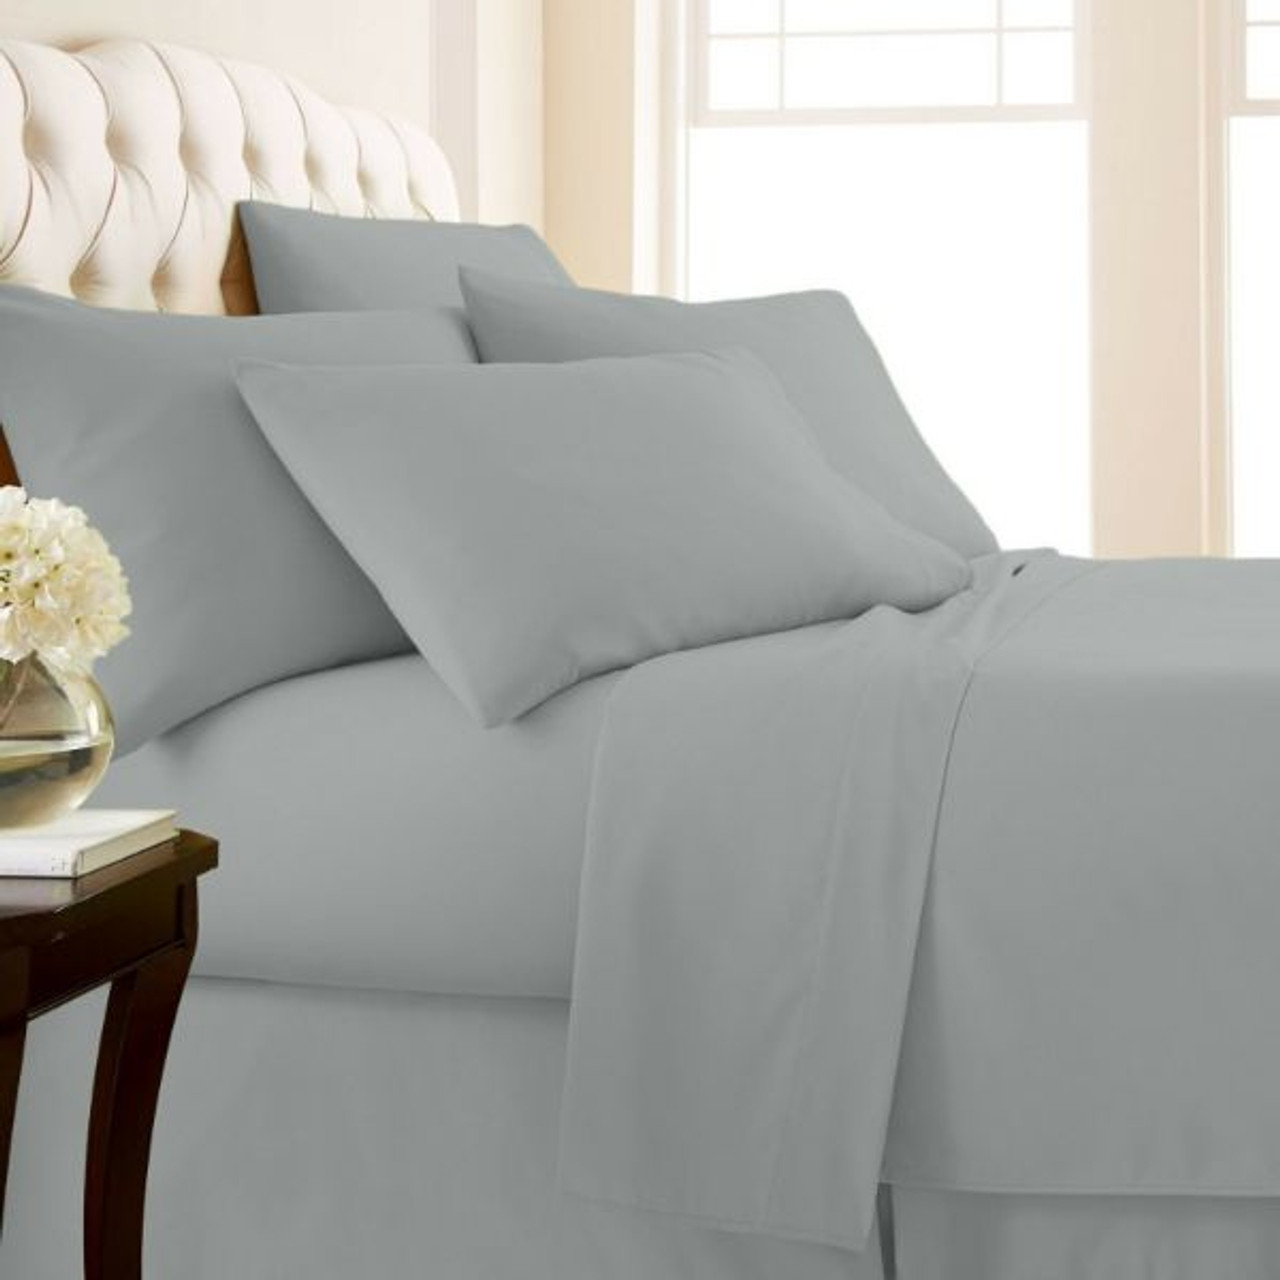 4-Piece: Luxury Home 1,000 Thread Count Egyptian Cotton Sheet Sets